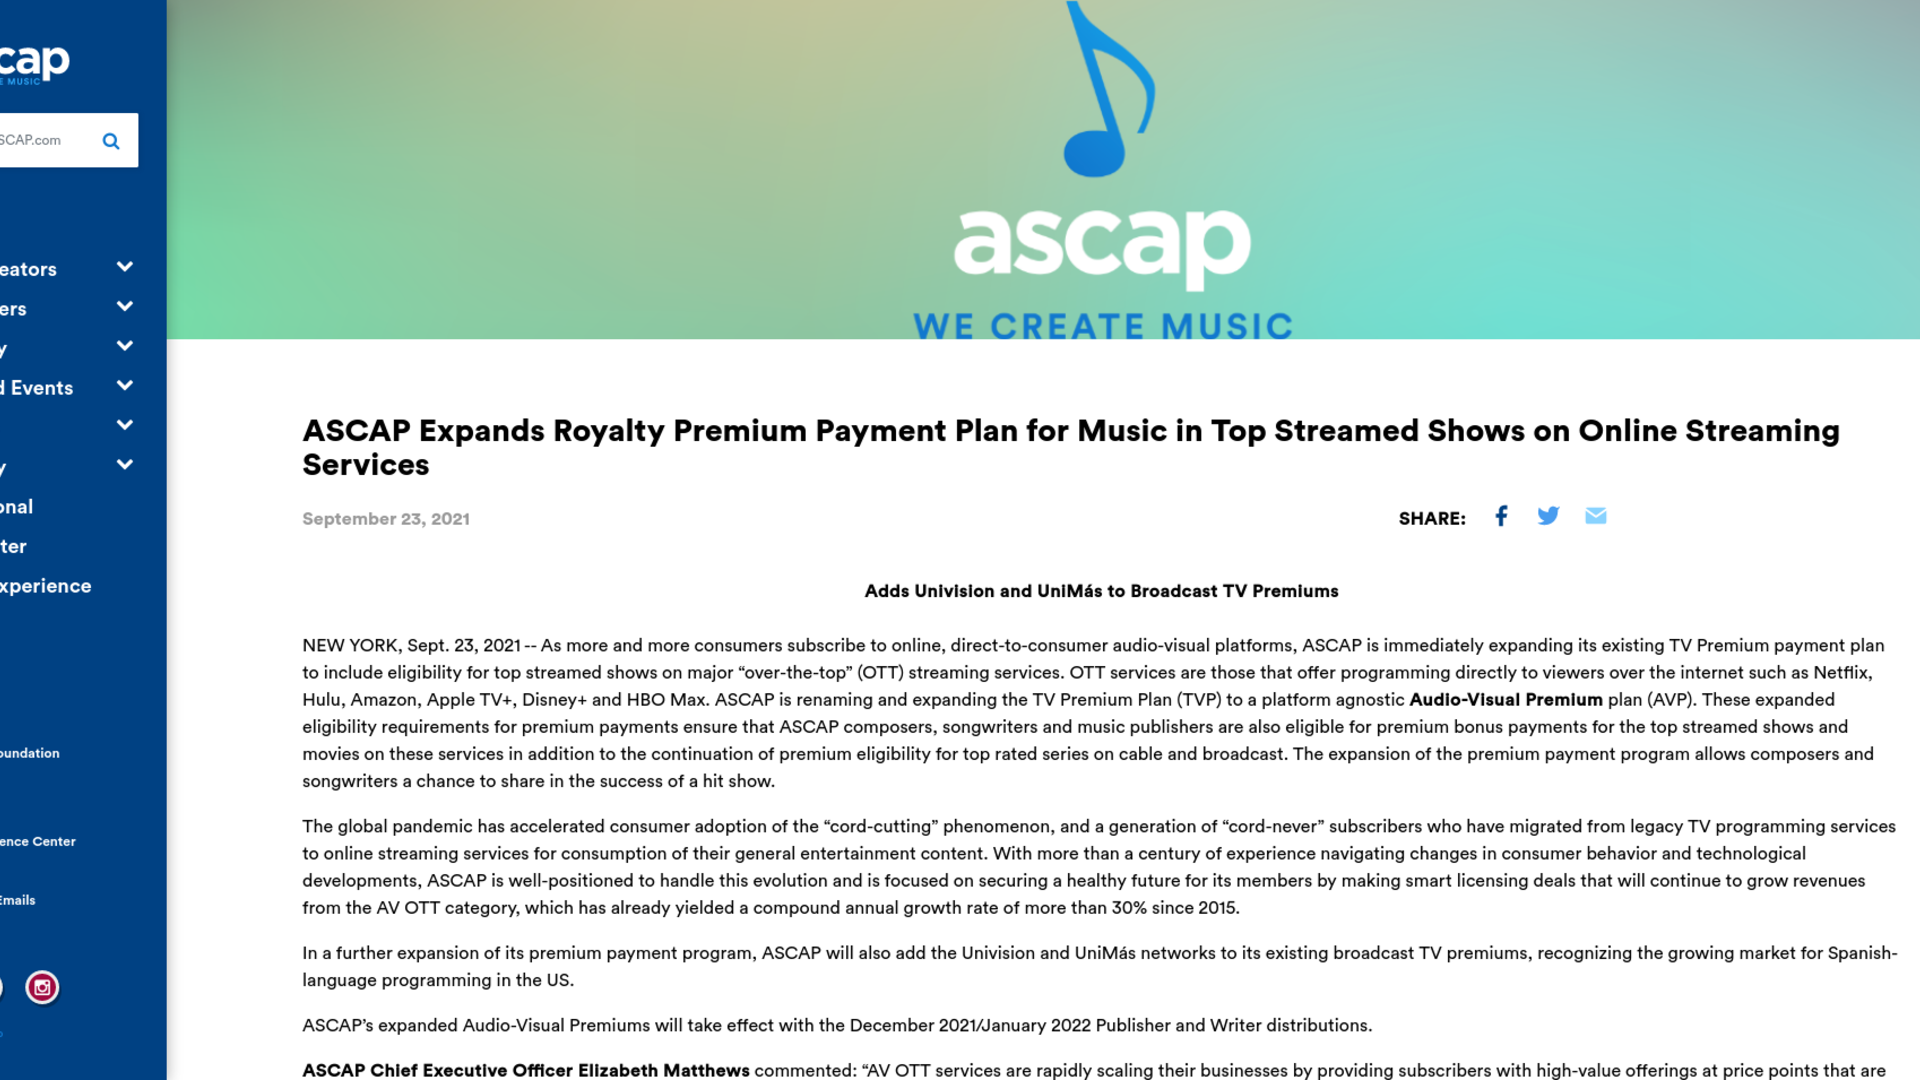 Fairness Rocks News ASCAP Expands Royalty Premium Payment Plan for Music in Top Streamed Shows on Online Streaming Services